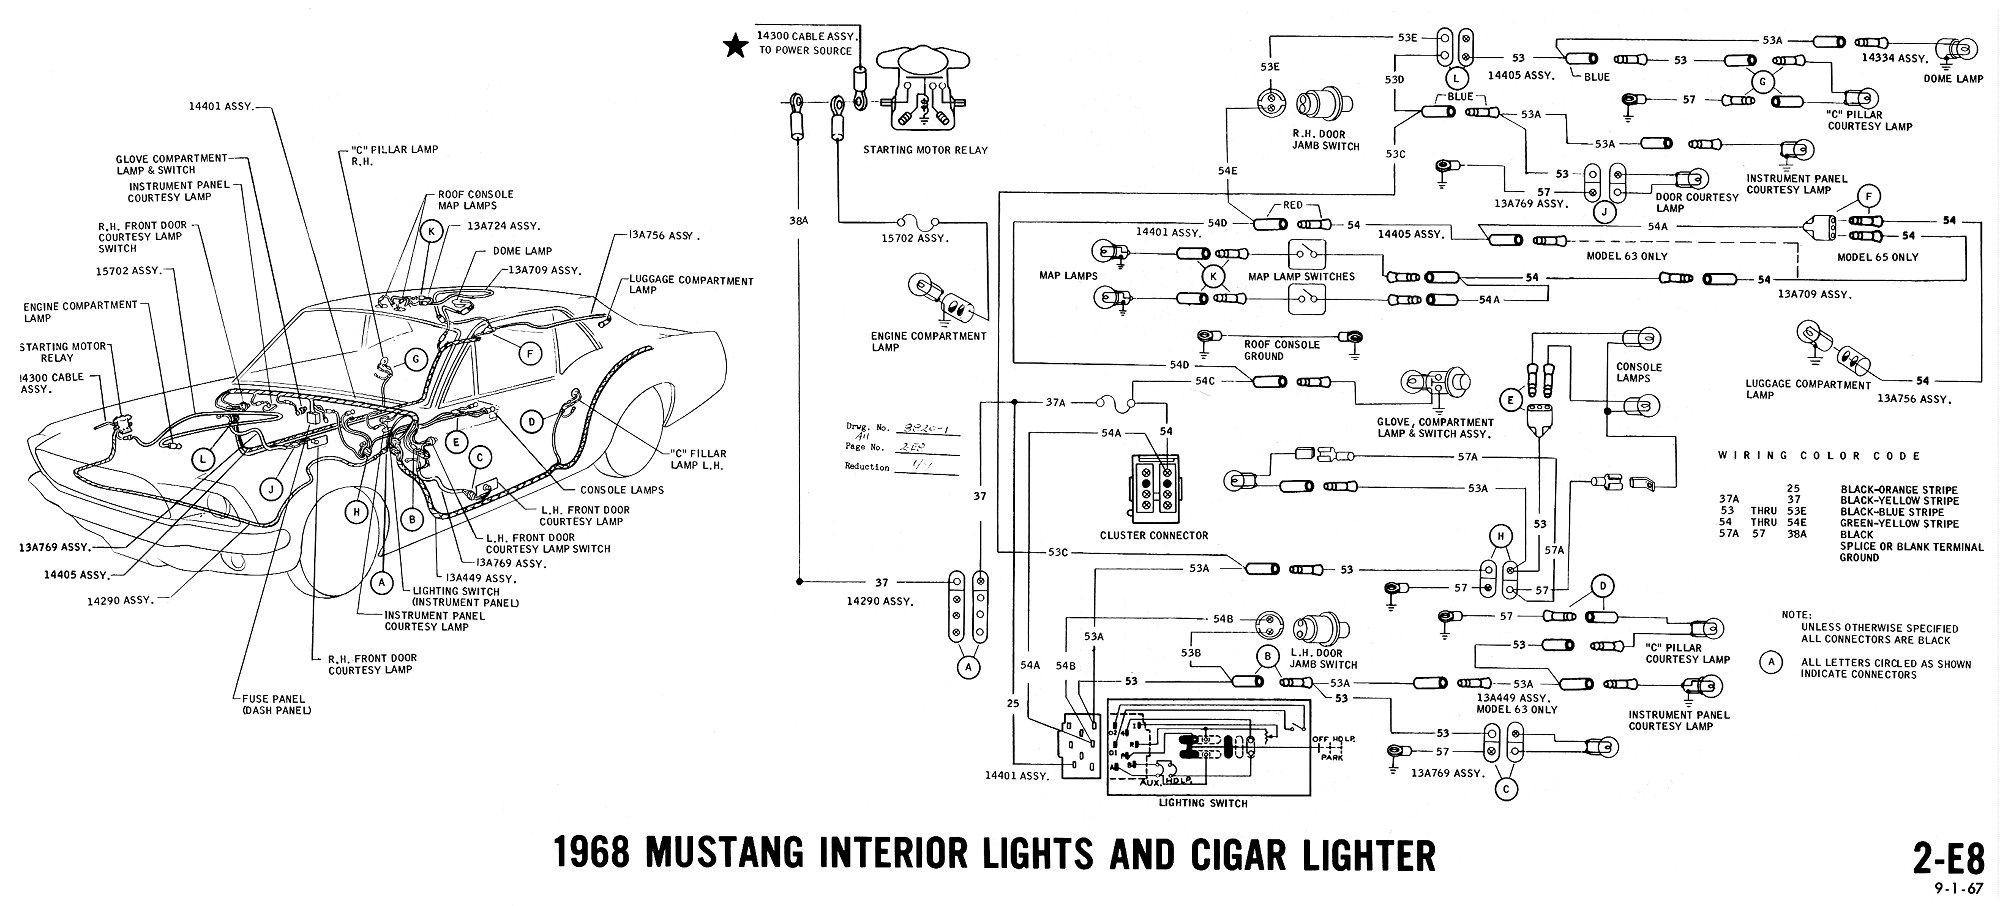 1968 mustang wiring diagrams evolving software rh peterfranza com 1967 mustang ignition switch wiring diagram 1967 mustang ignition switch wiring diagram